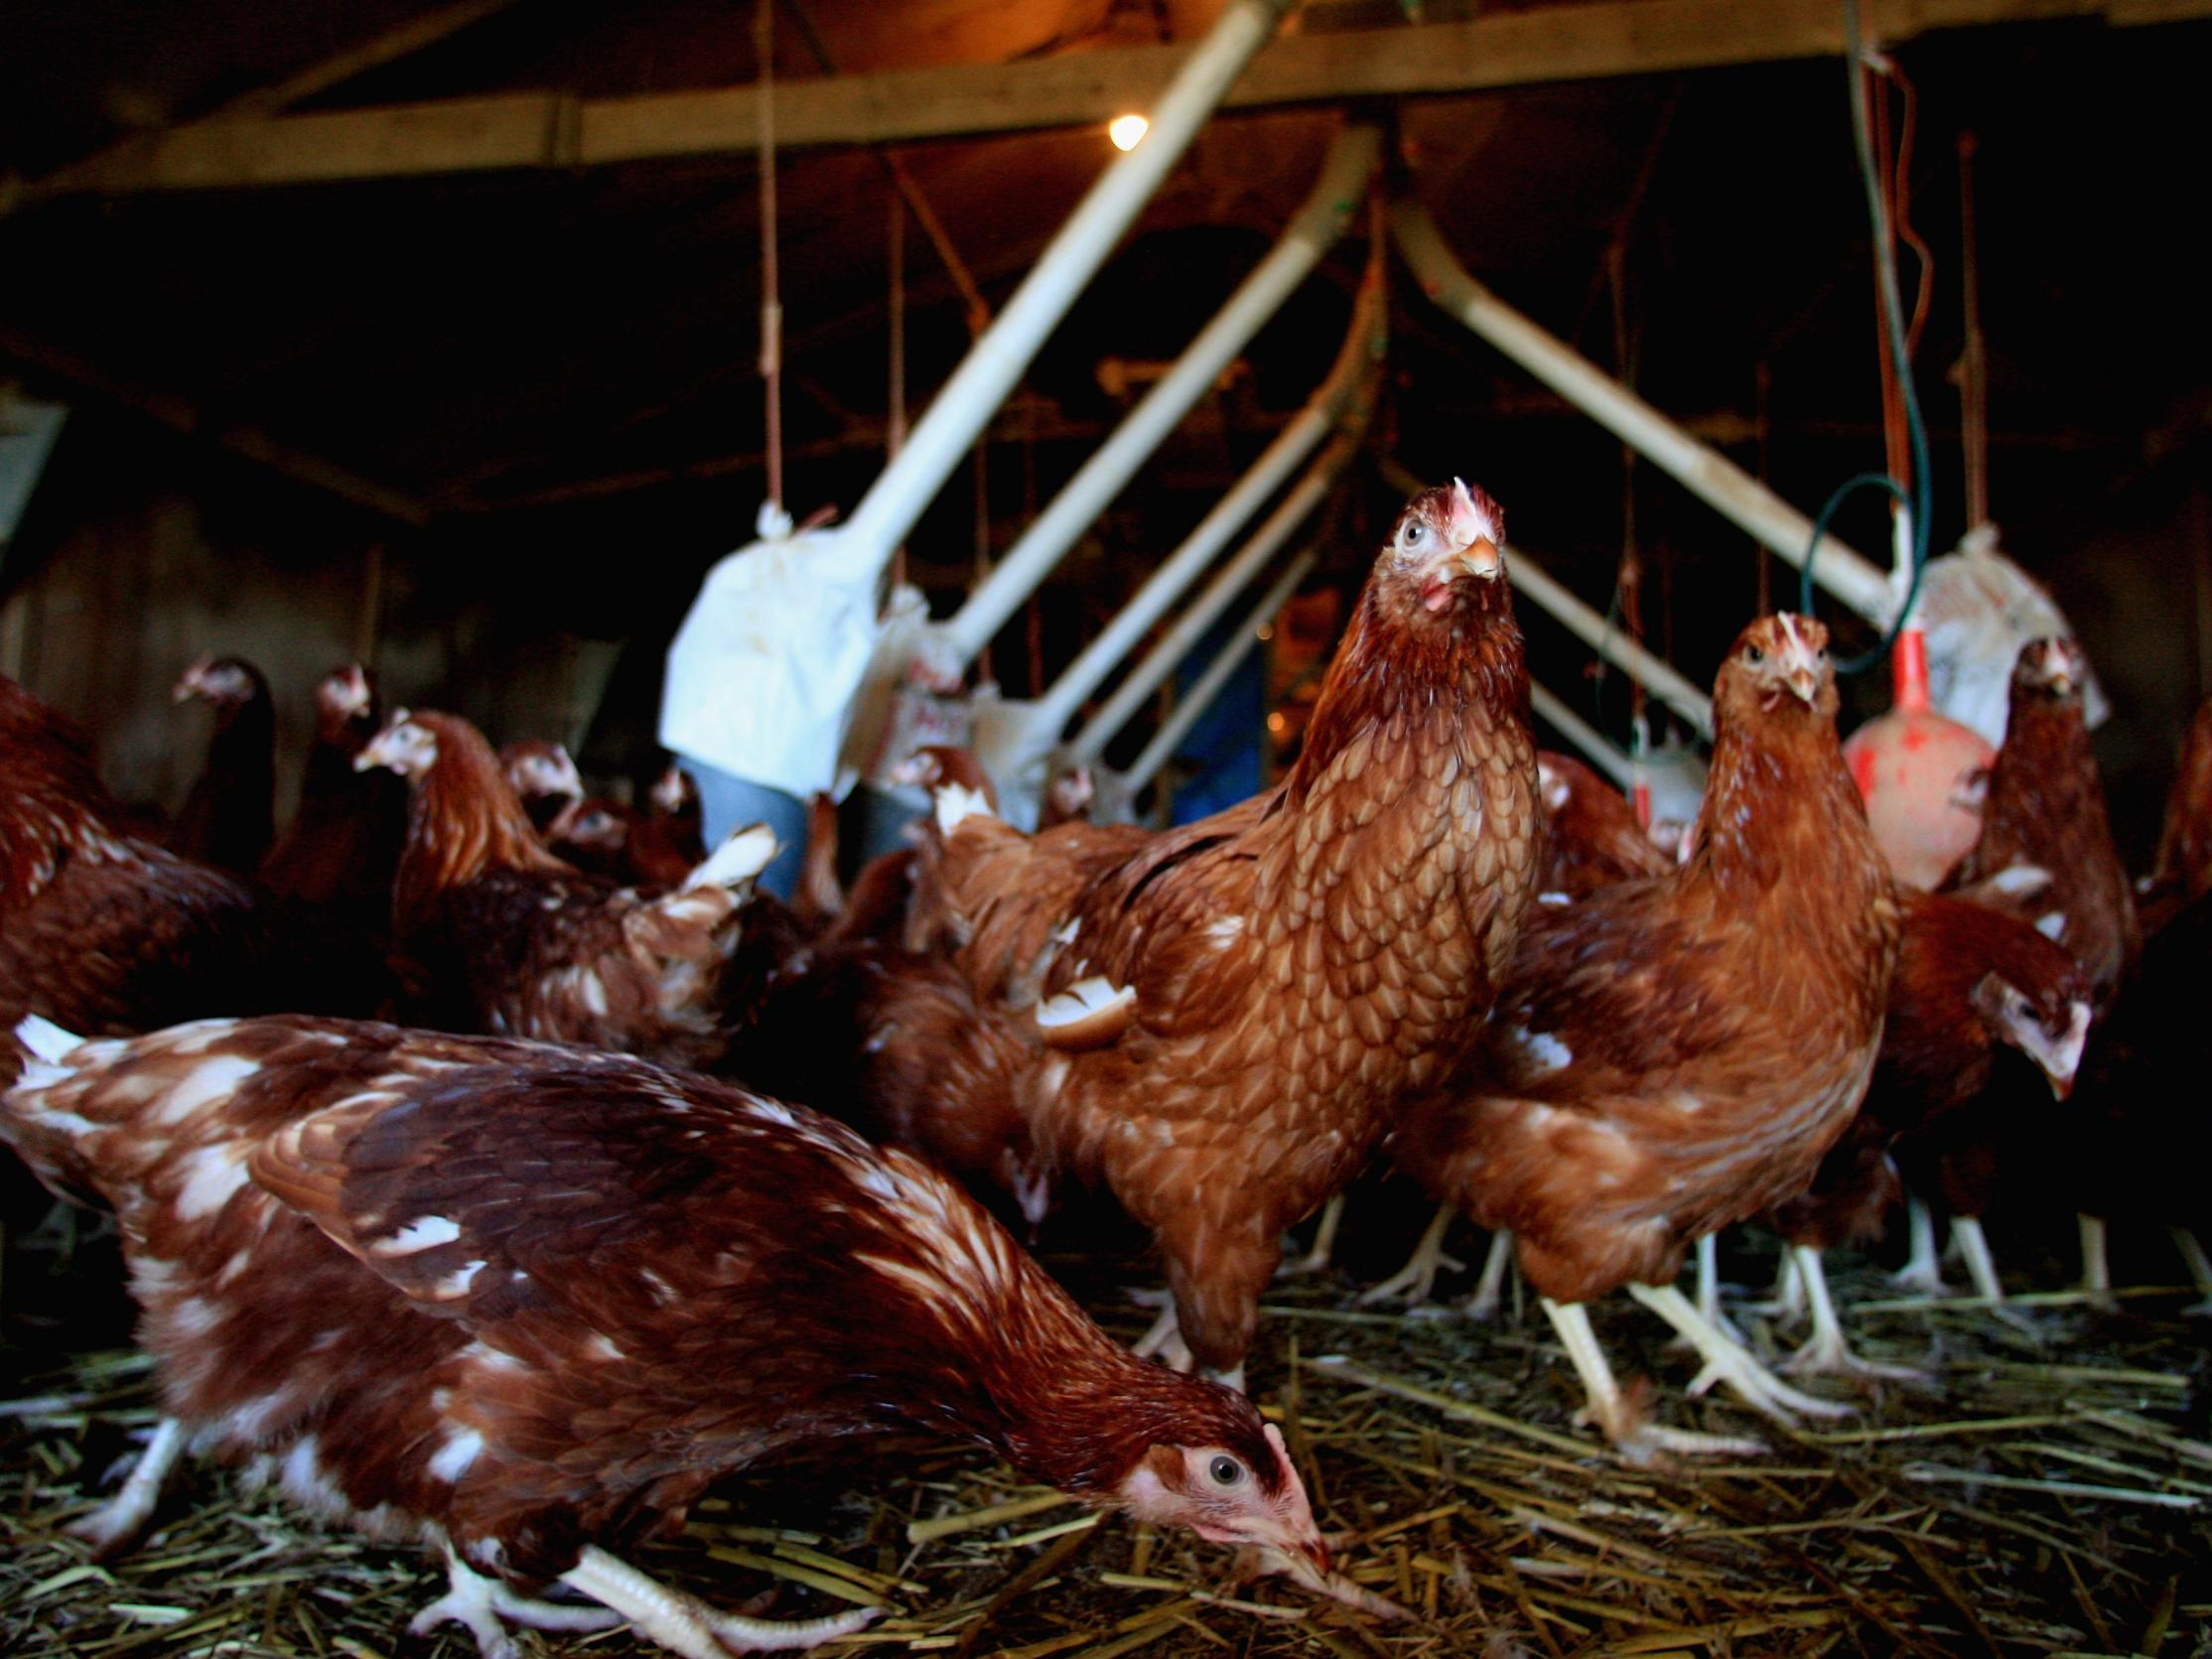 Bird flu: 27,000 chickens to be culled after outbreak confirmed at Suffolk farm